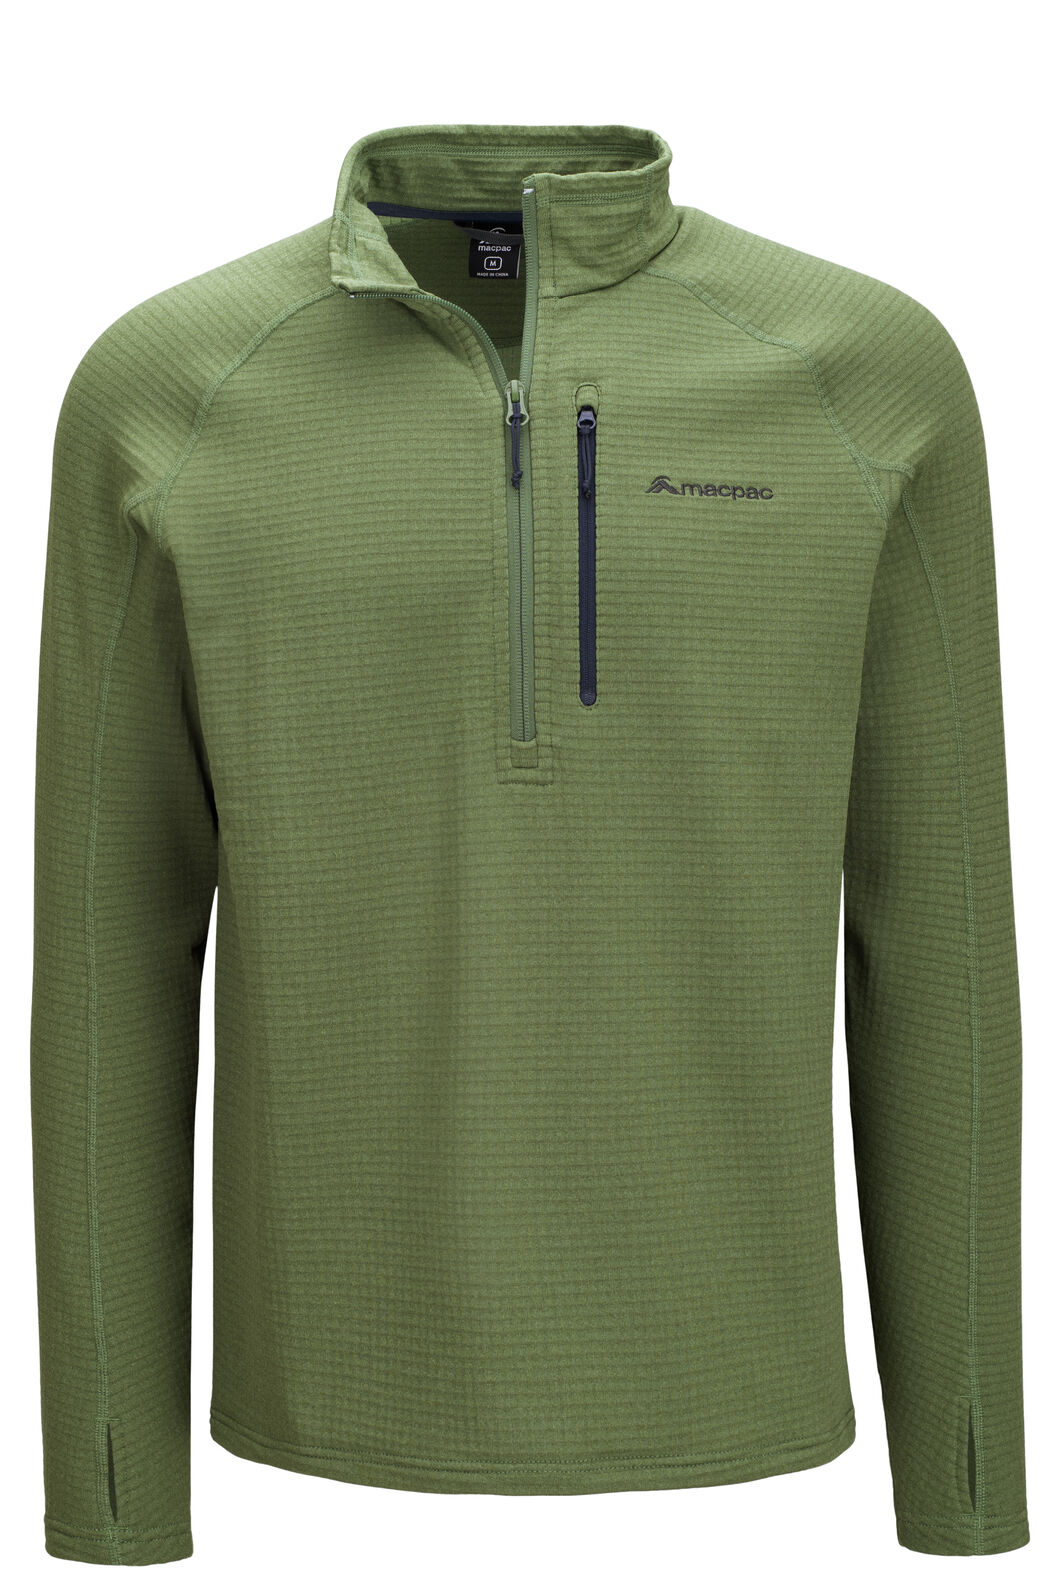 Macpac Ion Polartec® Fleece Half Zip Pullover — Men's, Bronze Green, hi-res